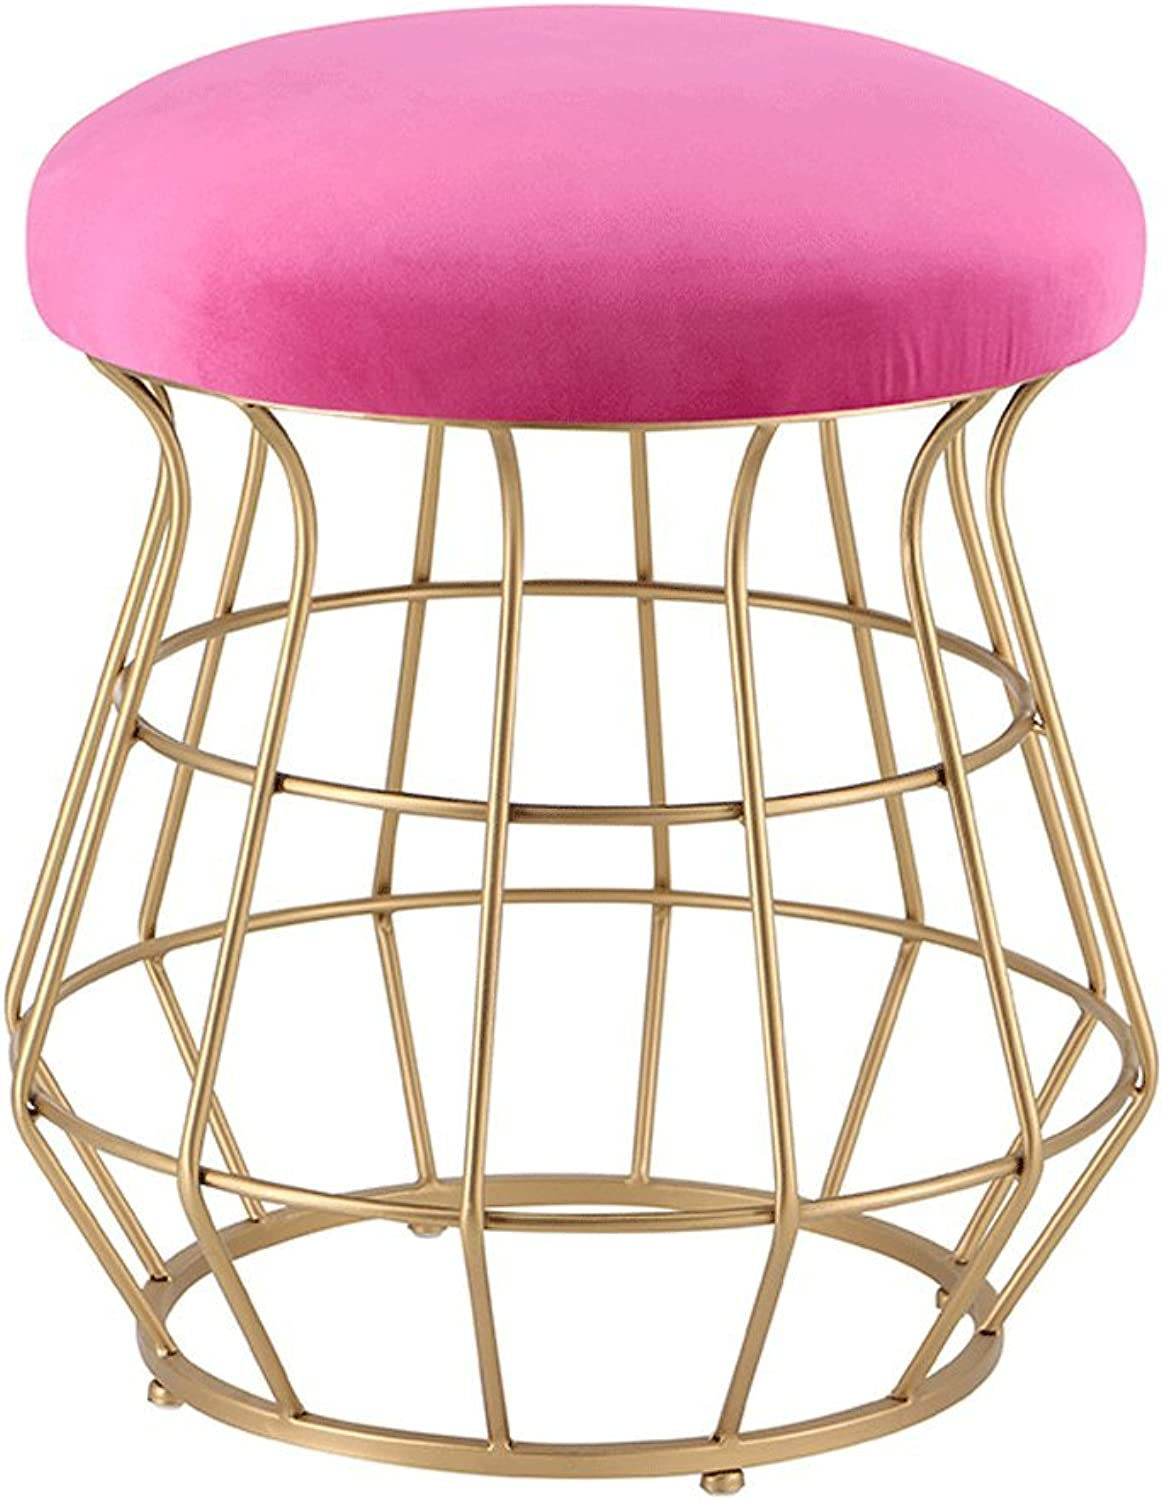 TXXM Barstools Metal Fashion Makeup Stool gold Stool Leg Stool Dining Chair Coffee Table Stool (color   RED, Size   H45CM)